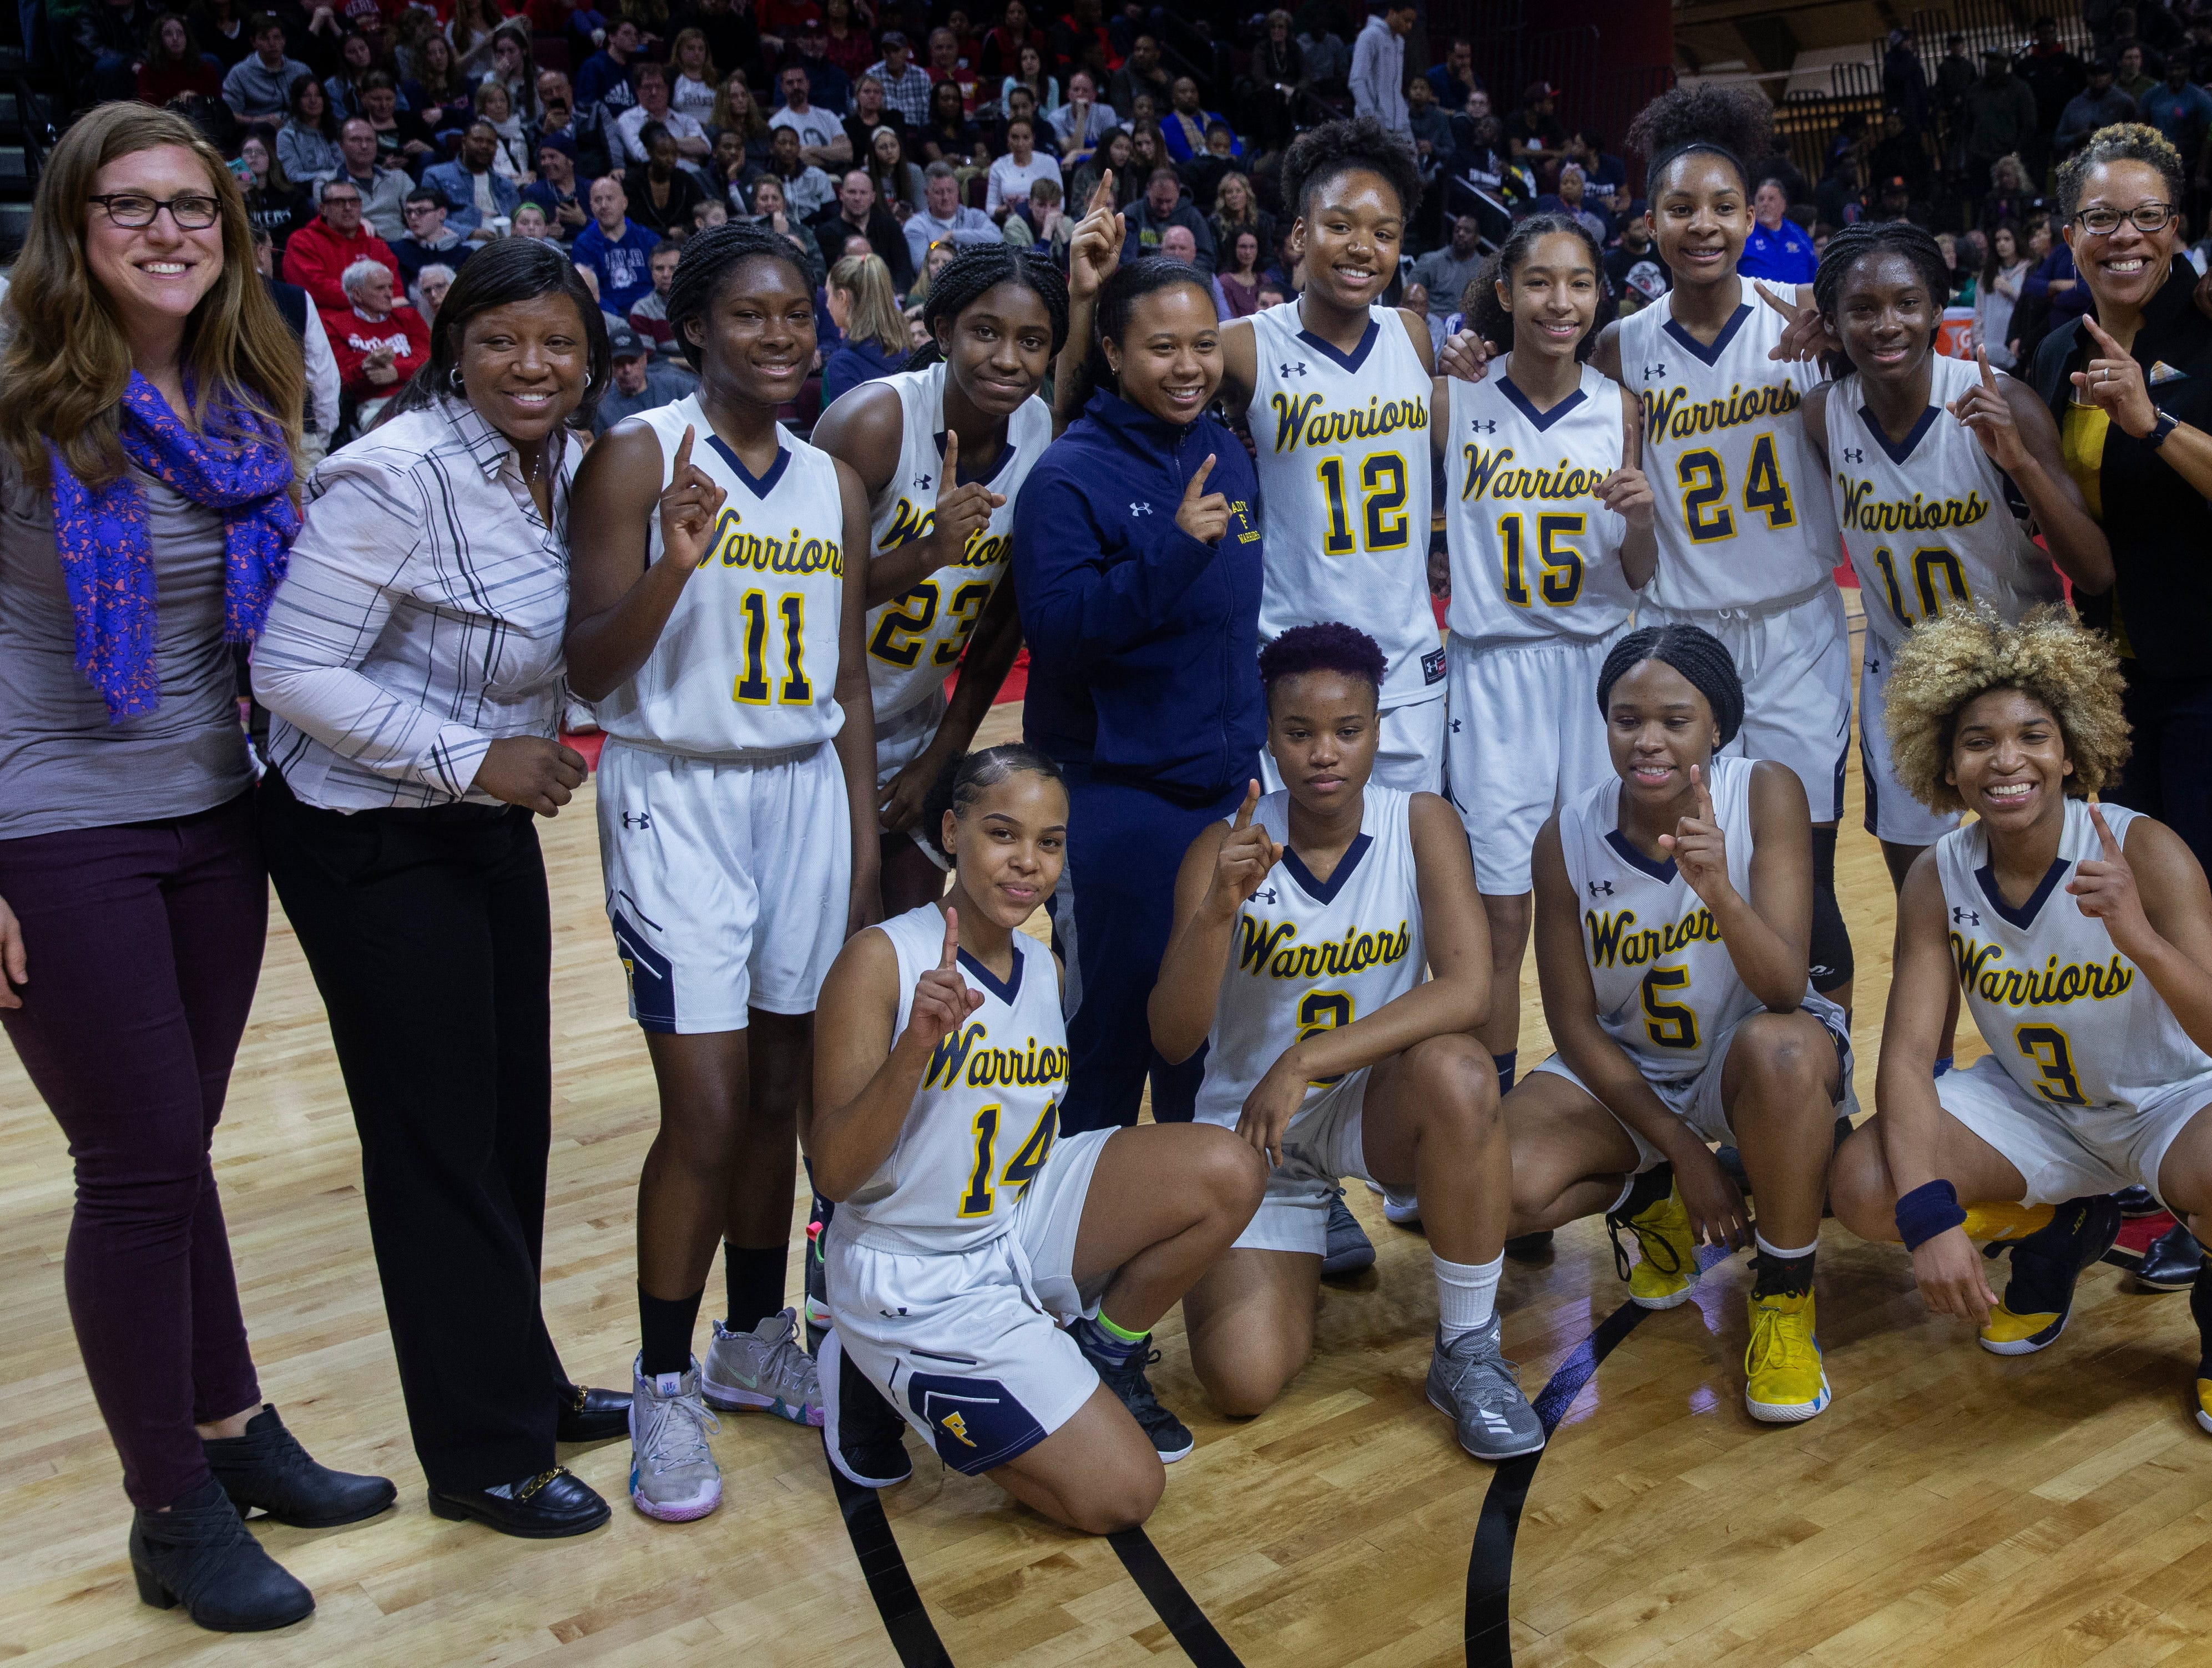 Franklin Girls Basketball vs Saddle River Day School  in 2019 NJSIAA Tournament of Champions Final in Piscataway, NJ  on March 17, 2019.